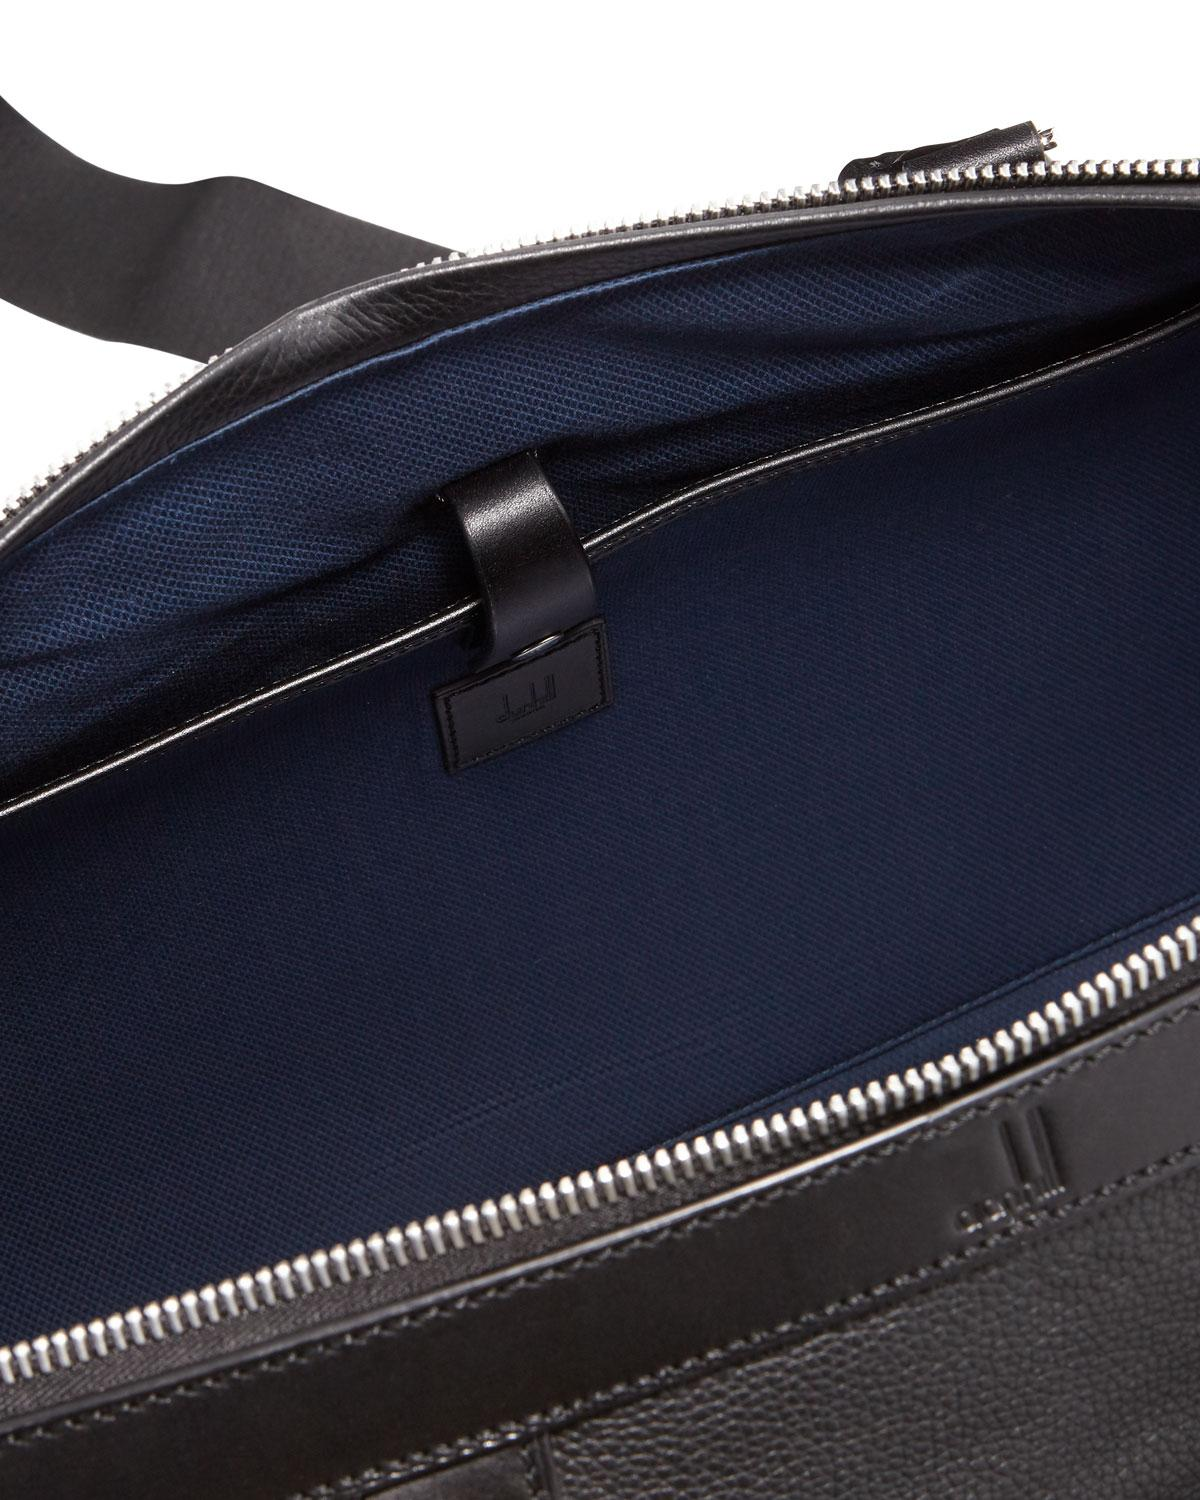 Lyst - Dunhill Leather Duffel Bag in Black for Men a425bde641